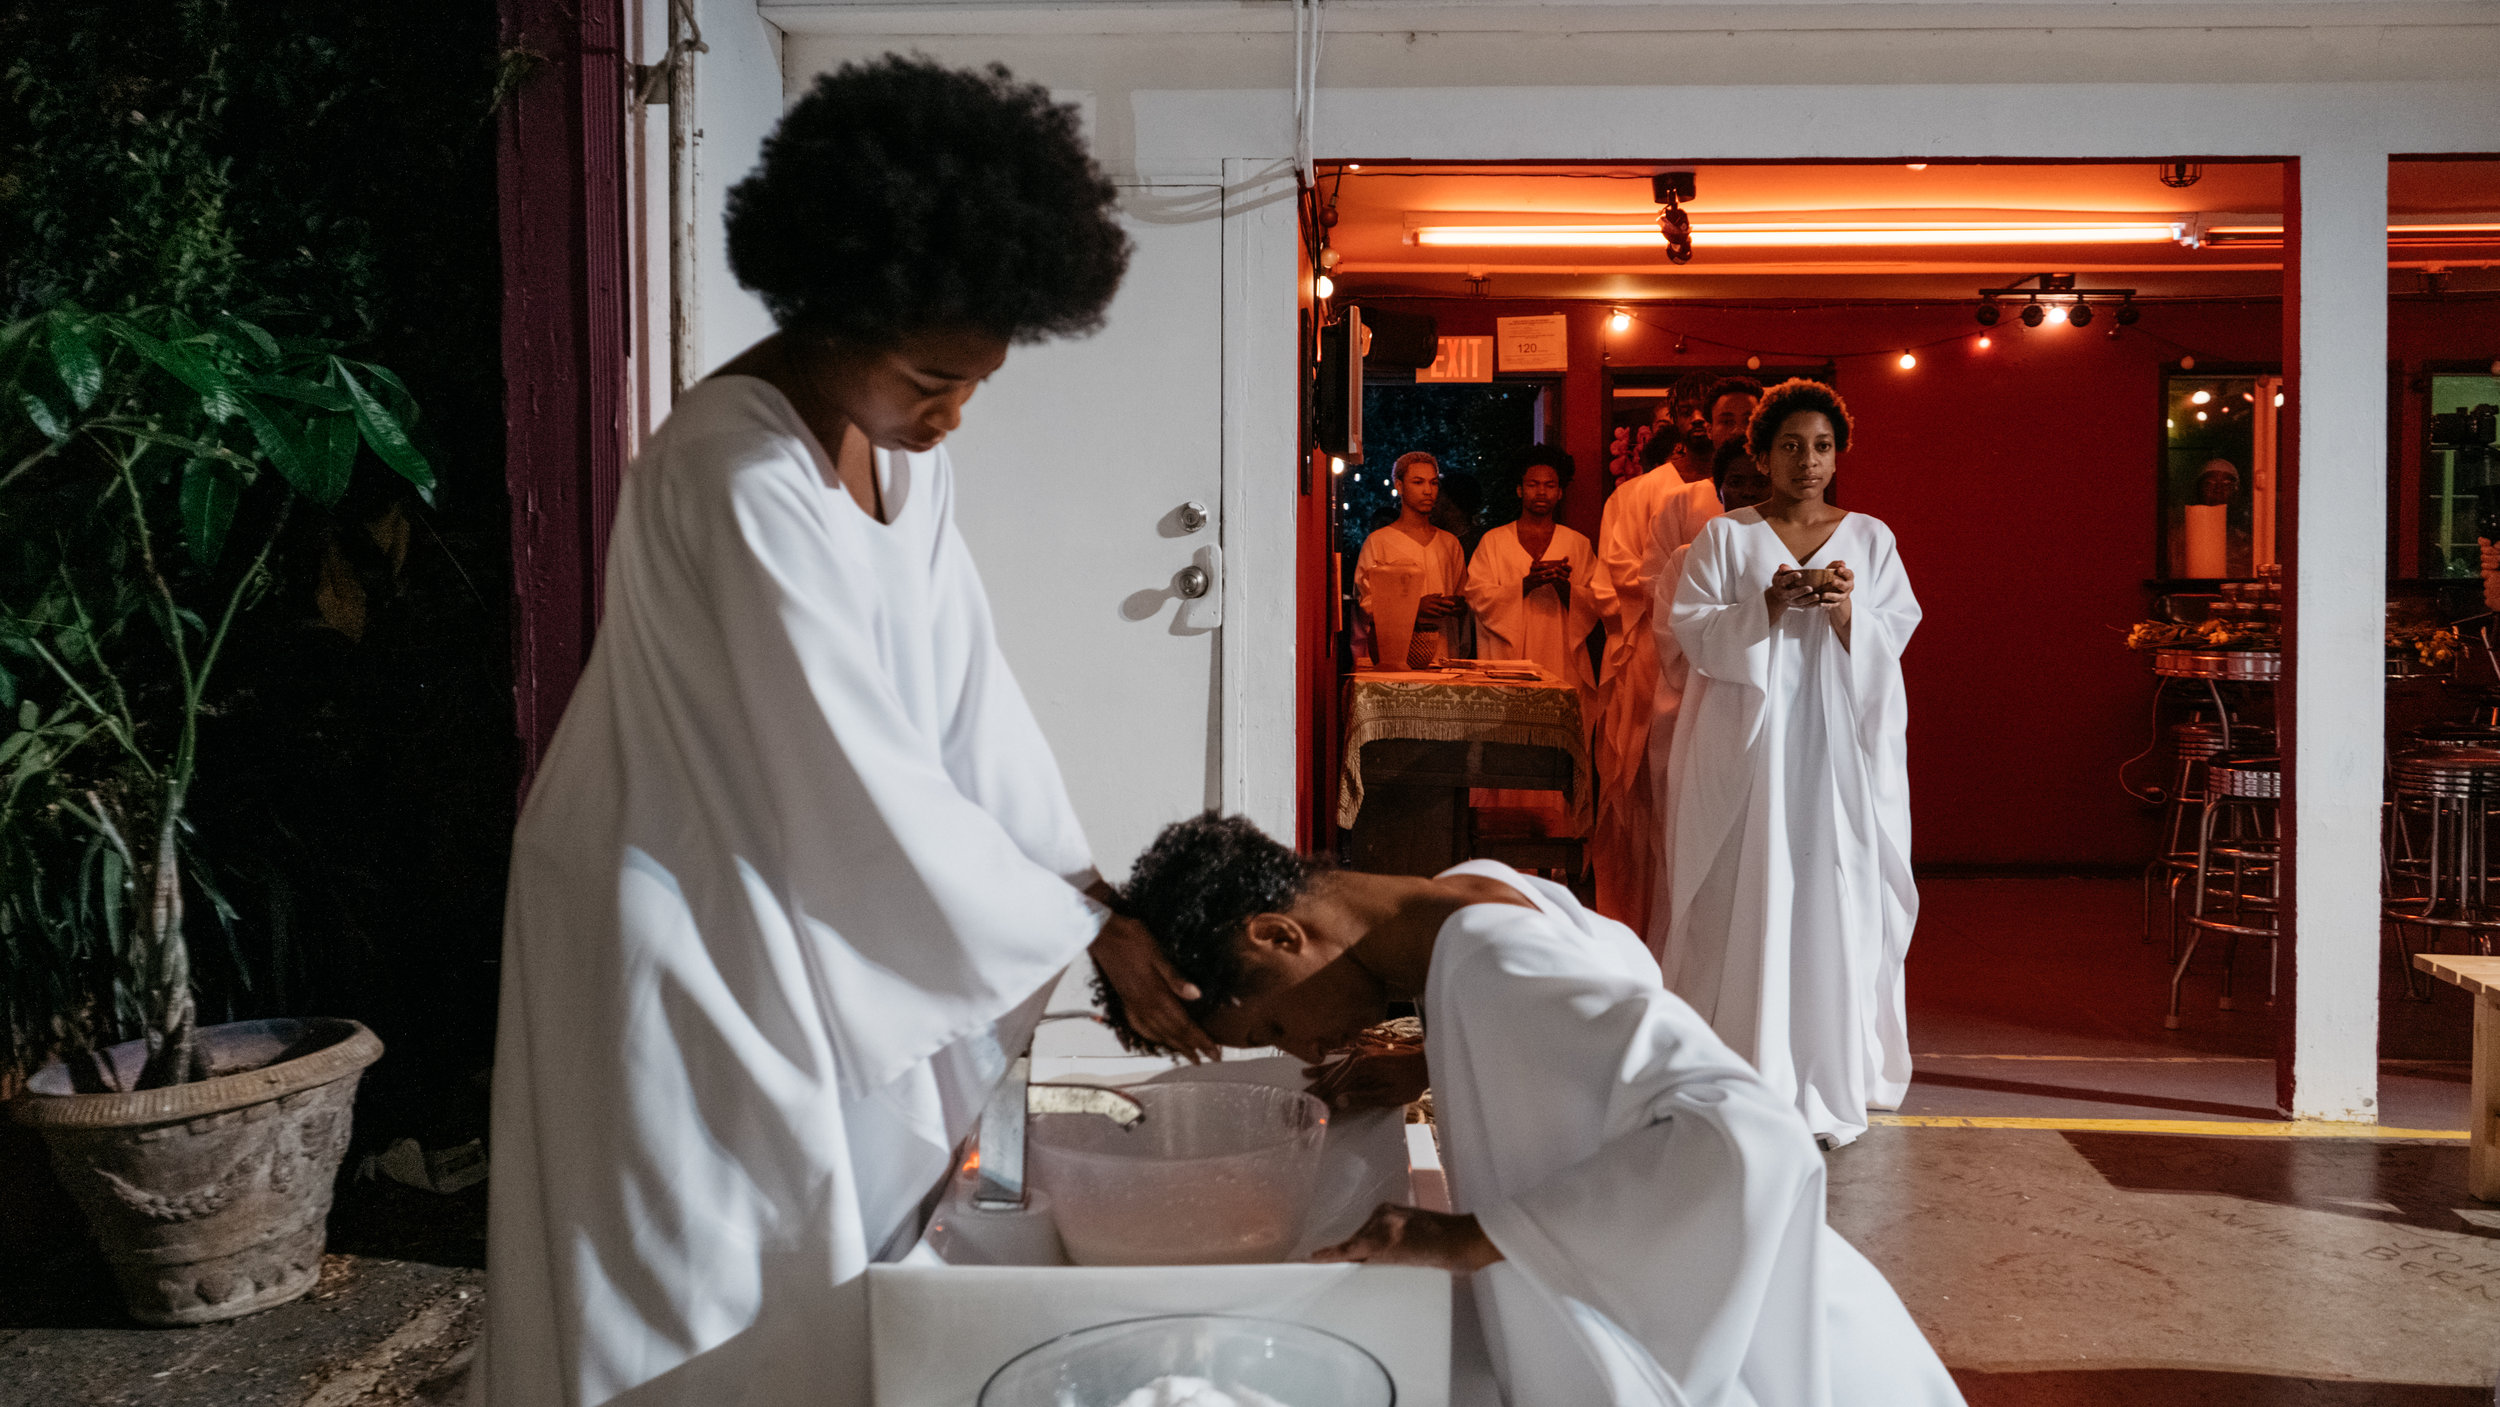 We kneel in reverence of our hair. Our natural hair historically scoffed at is now seen as a blessing.